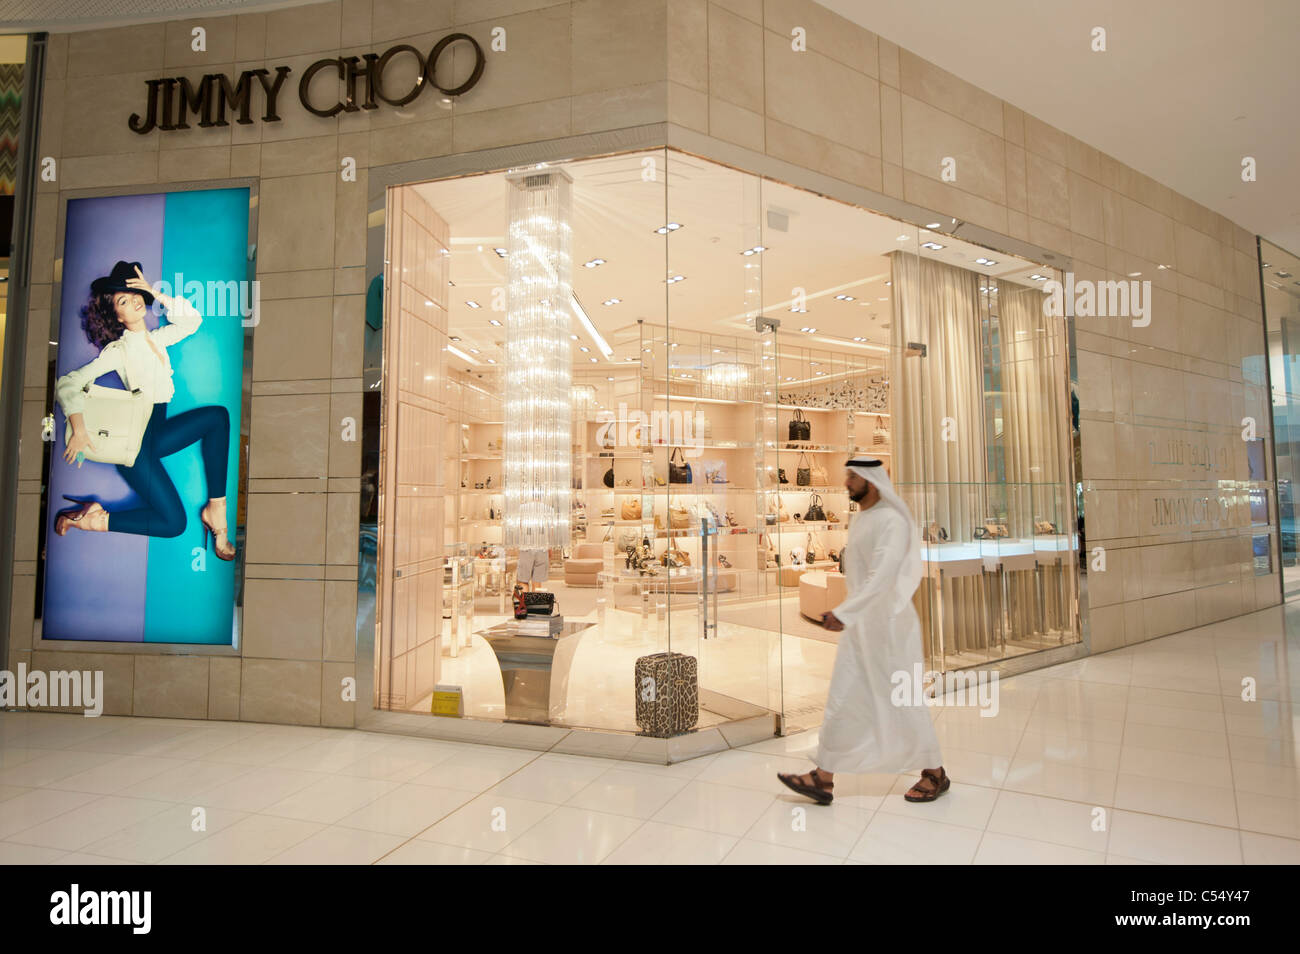 9e37f8a081f Jimmy Choo store n Dubai Mall in Dubai United Arab Emirates UAE - Stock  Image